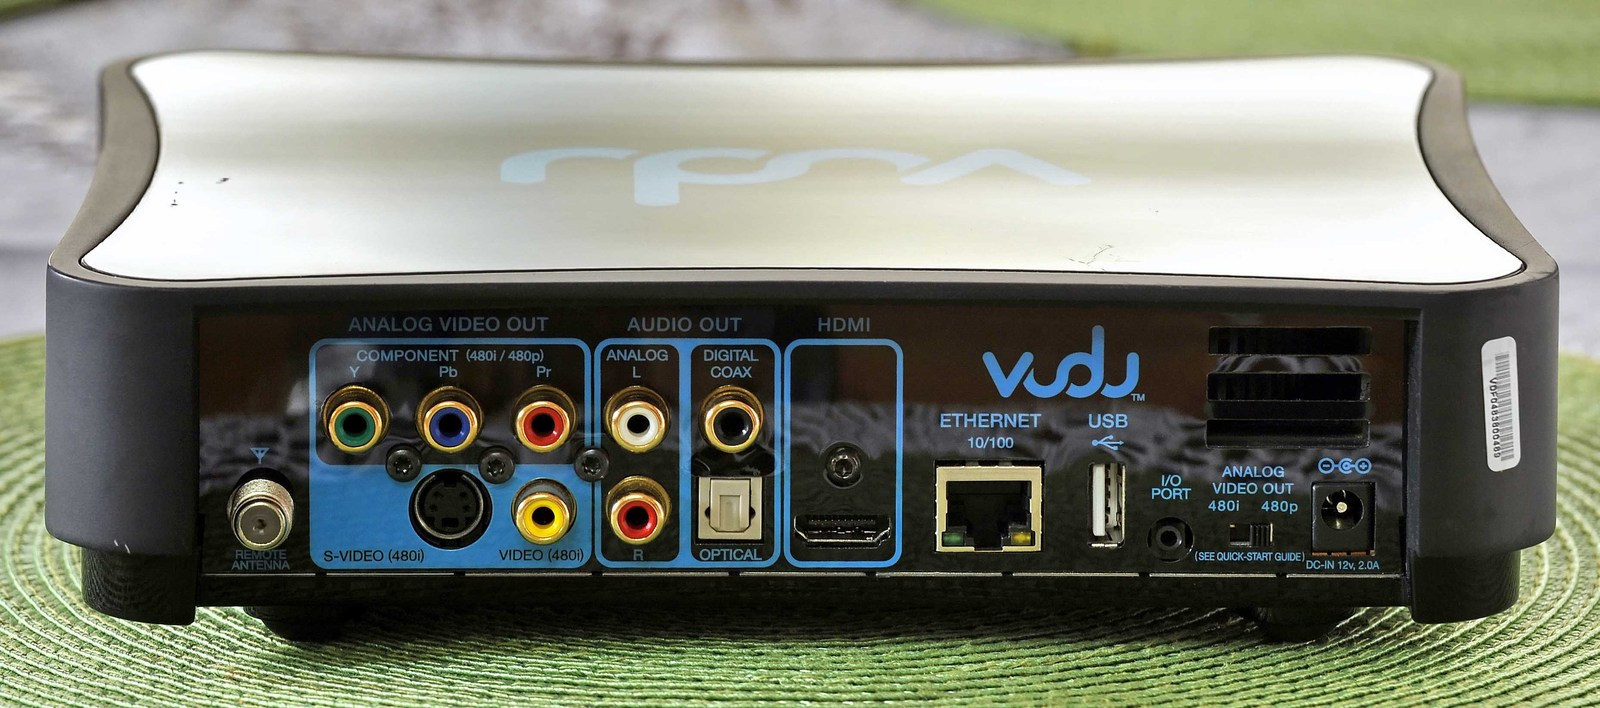 vudu Home Digital Multi-Plex Media Streamer Model: VUDUBX100 Works Great !